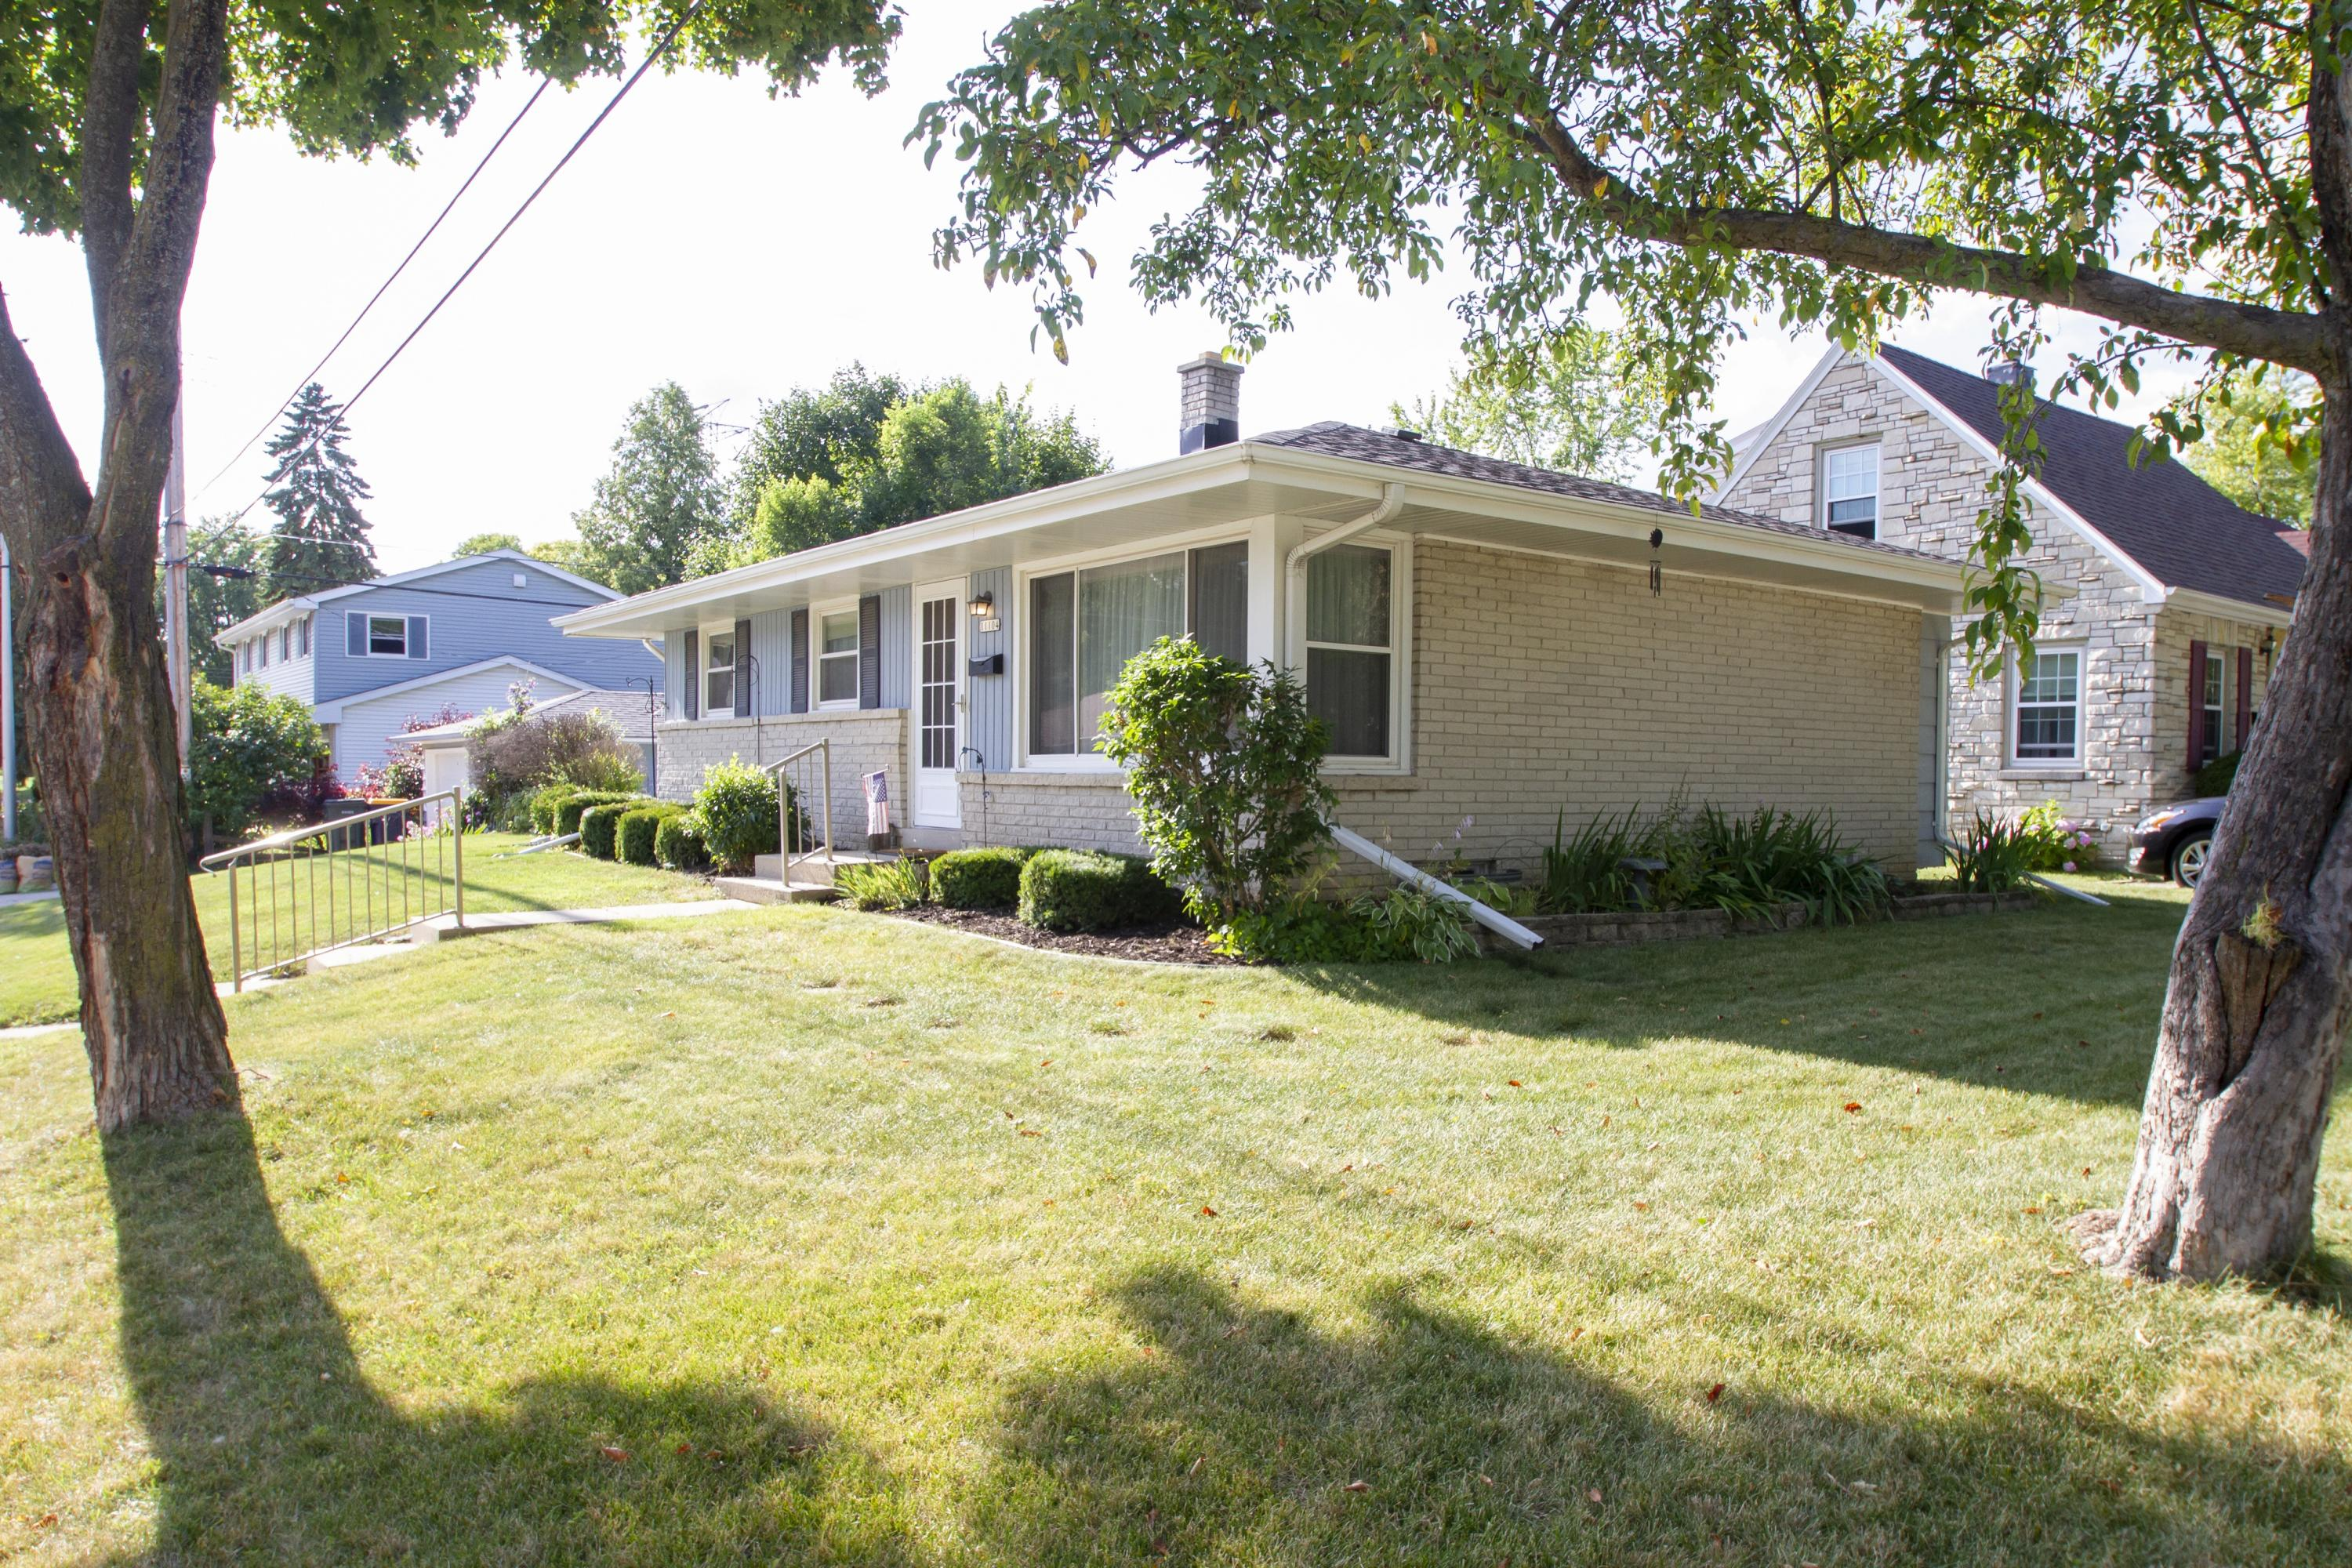 Houses for Sale in Sothern Wisconsin | Stapleton Realty